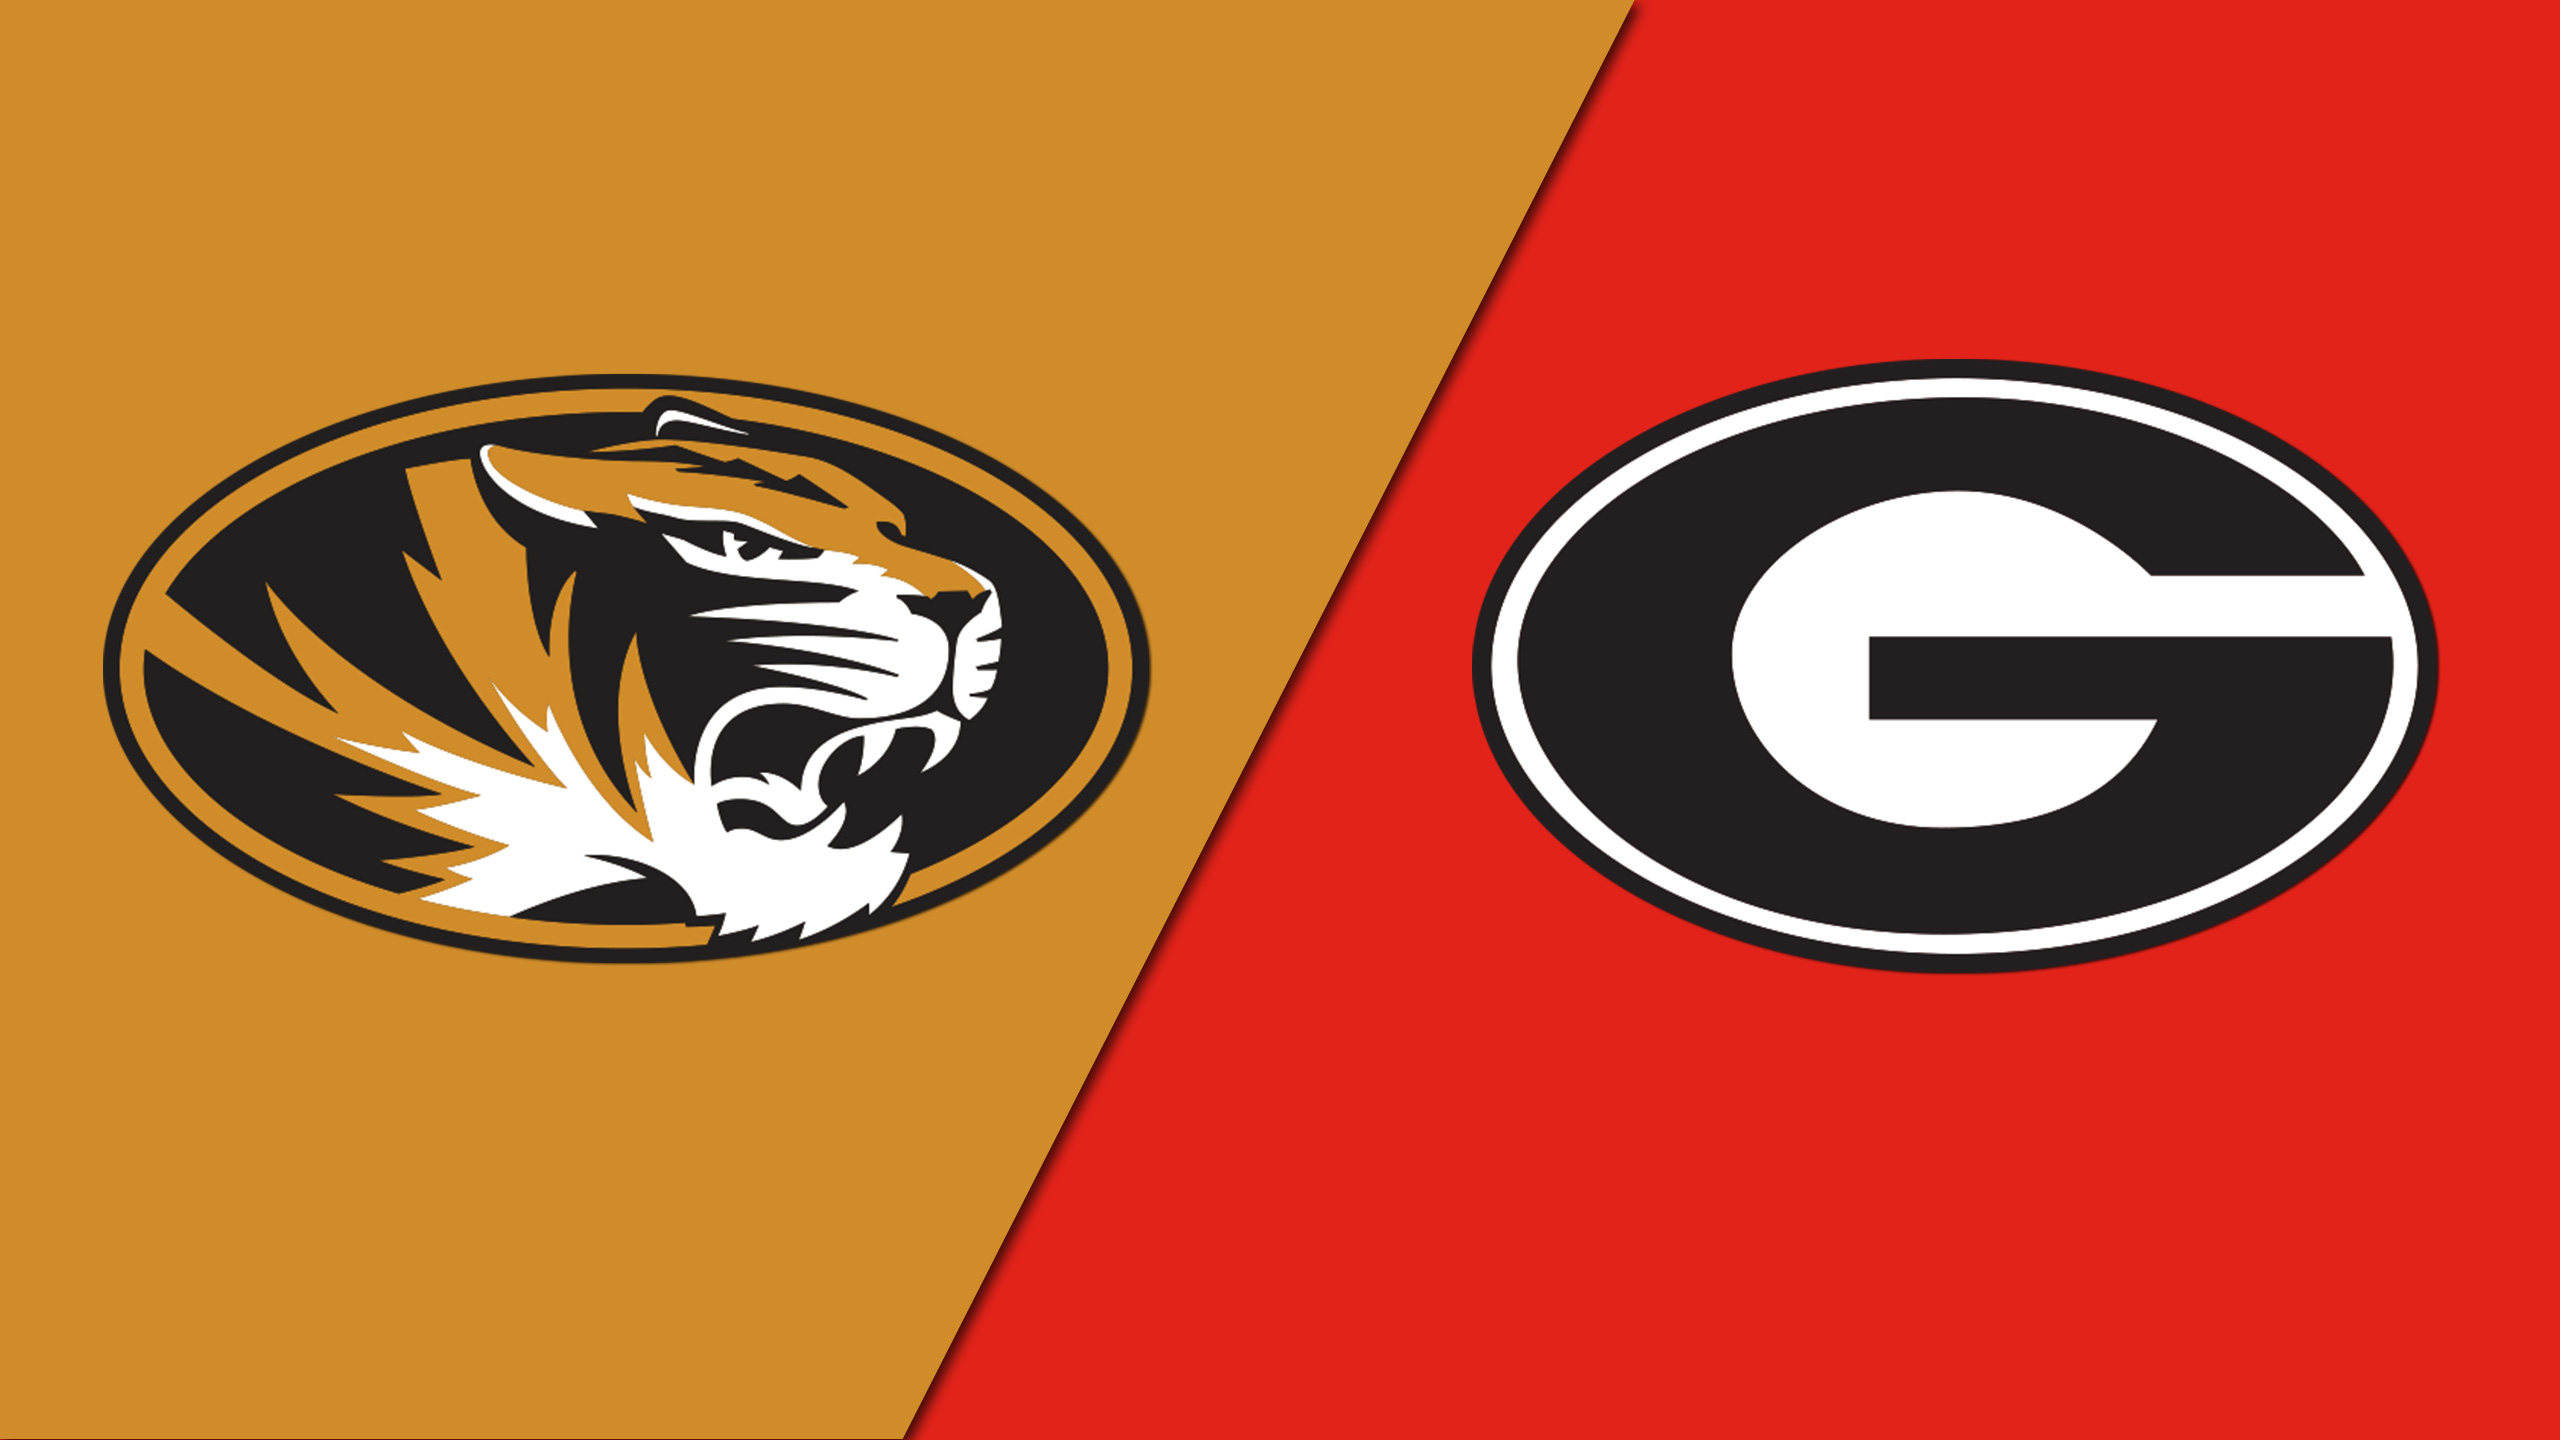 Missouri vs. Georgia (Baseball)